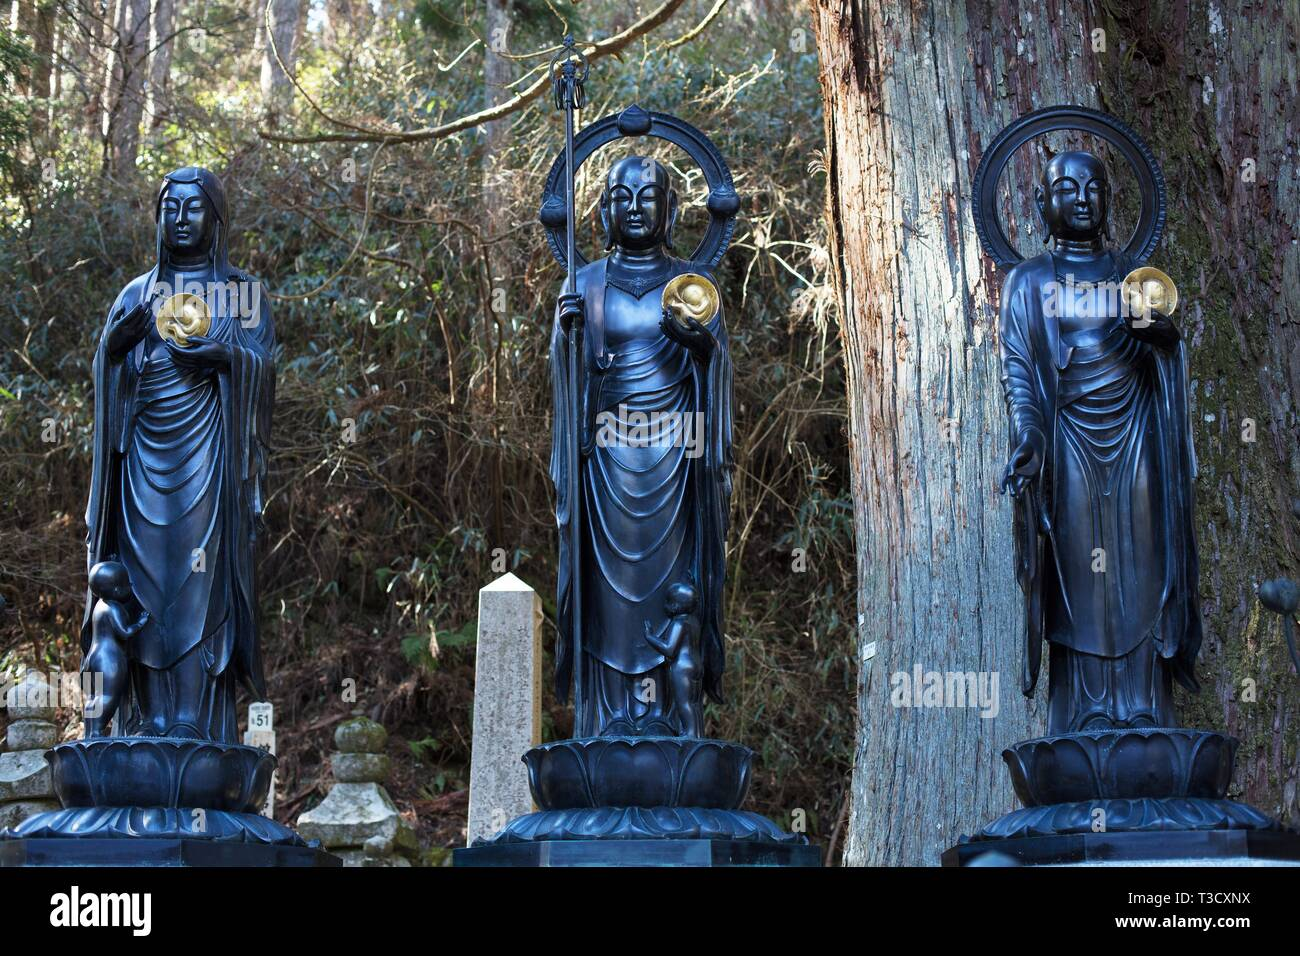 Three black robed statues holding golden fetuses in Okunoin cemetery in Koyasan, Japan. - Stock Image